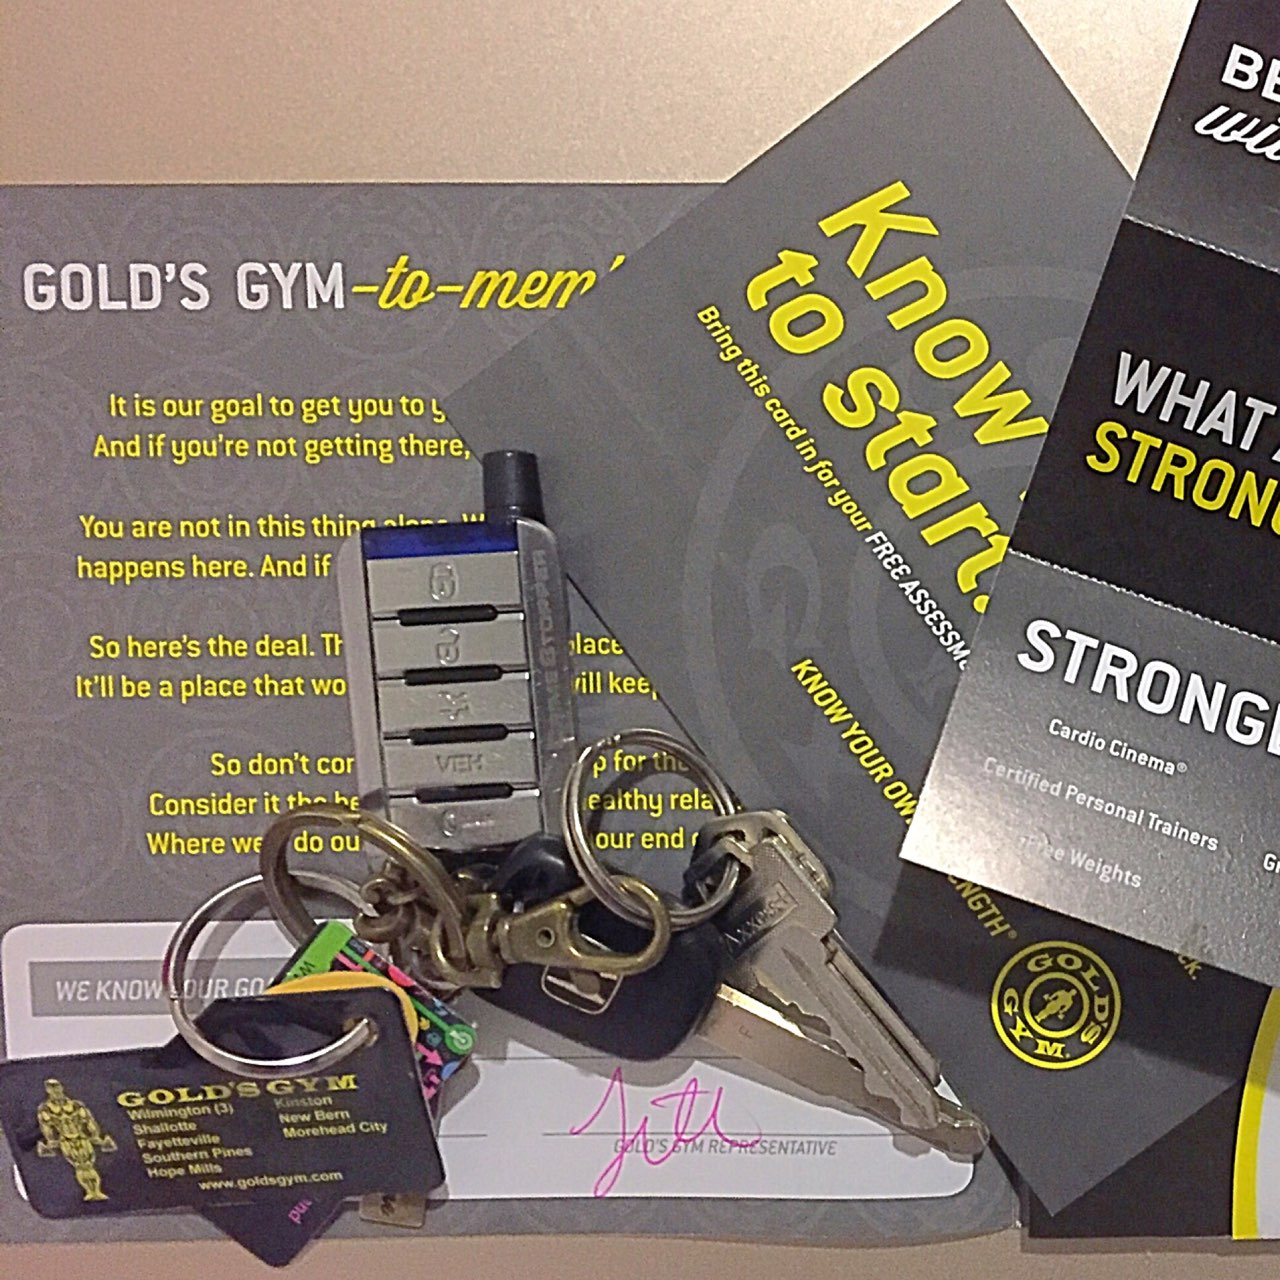 Best Birthday Gift Ever 15 Months Golds Gym Membership Thank You Boyfriend Goldsgym